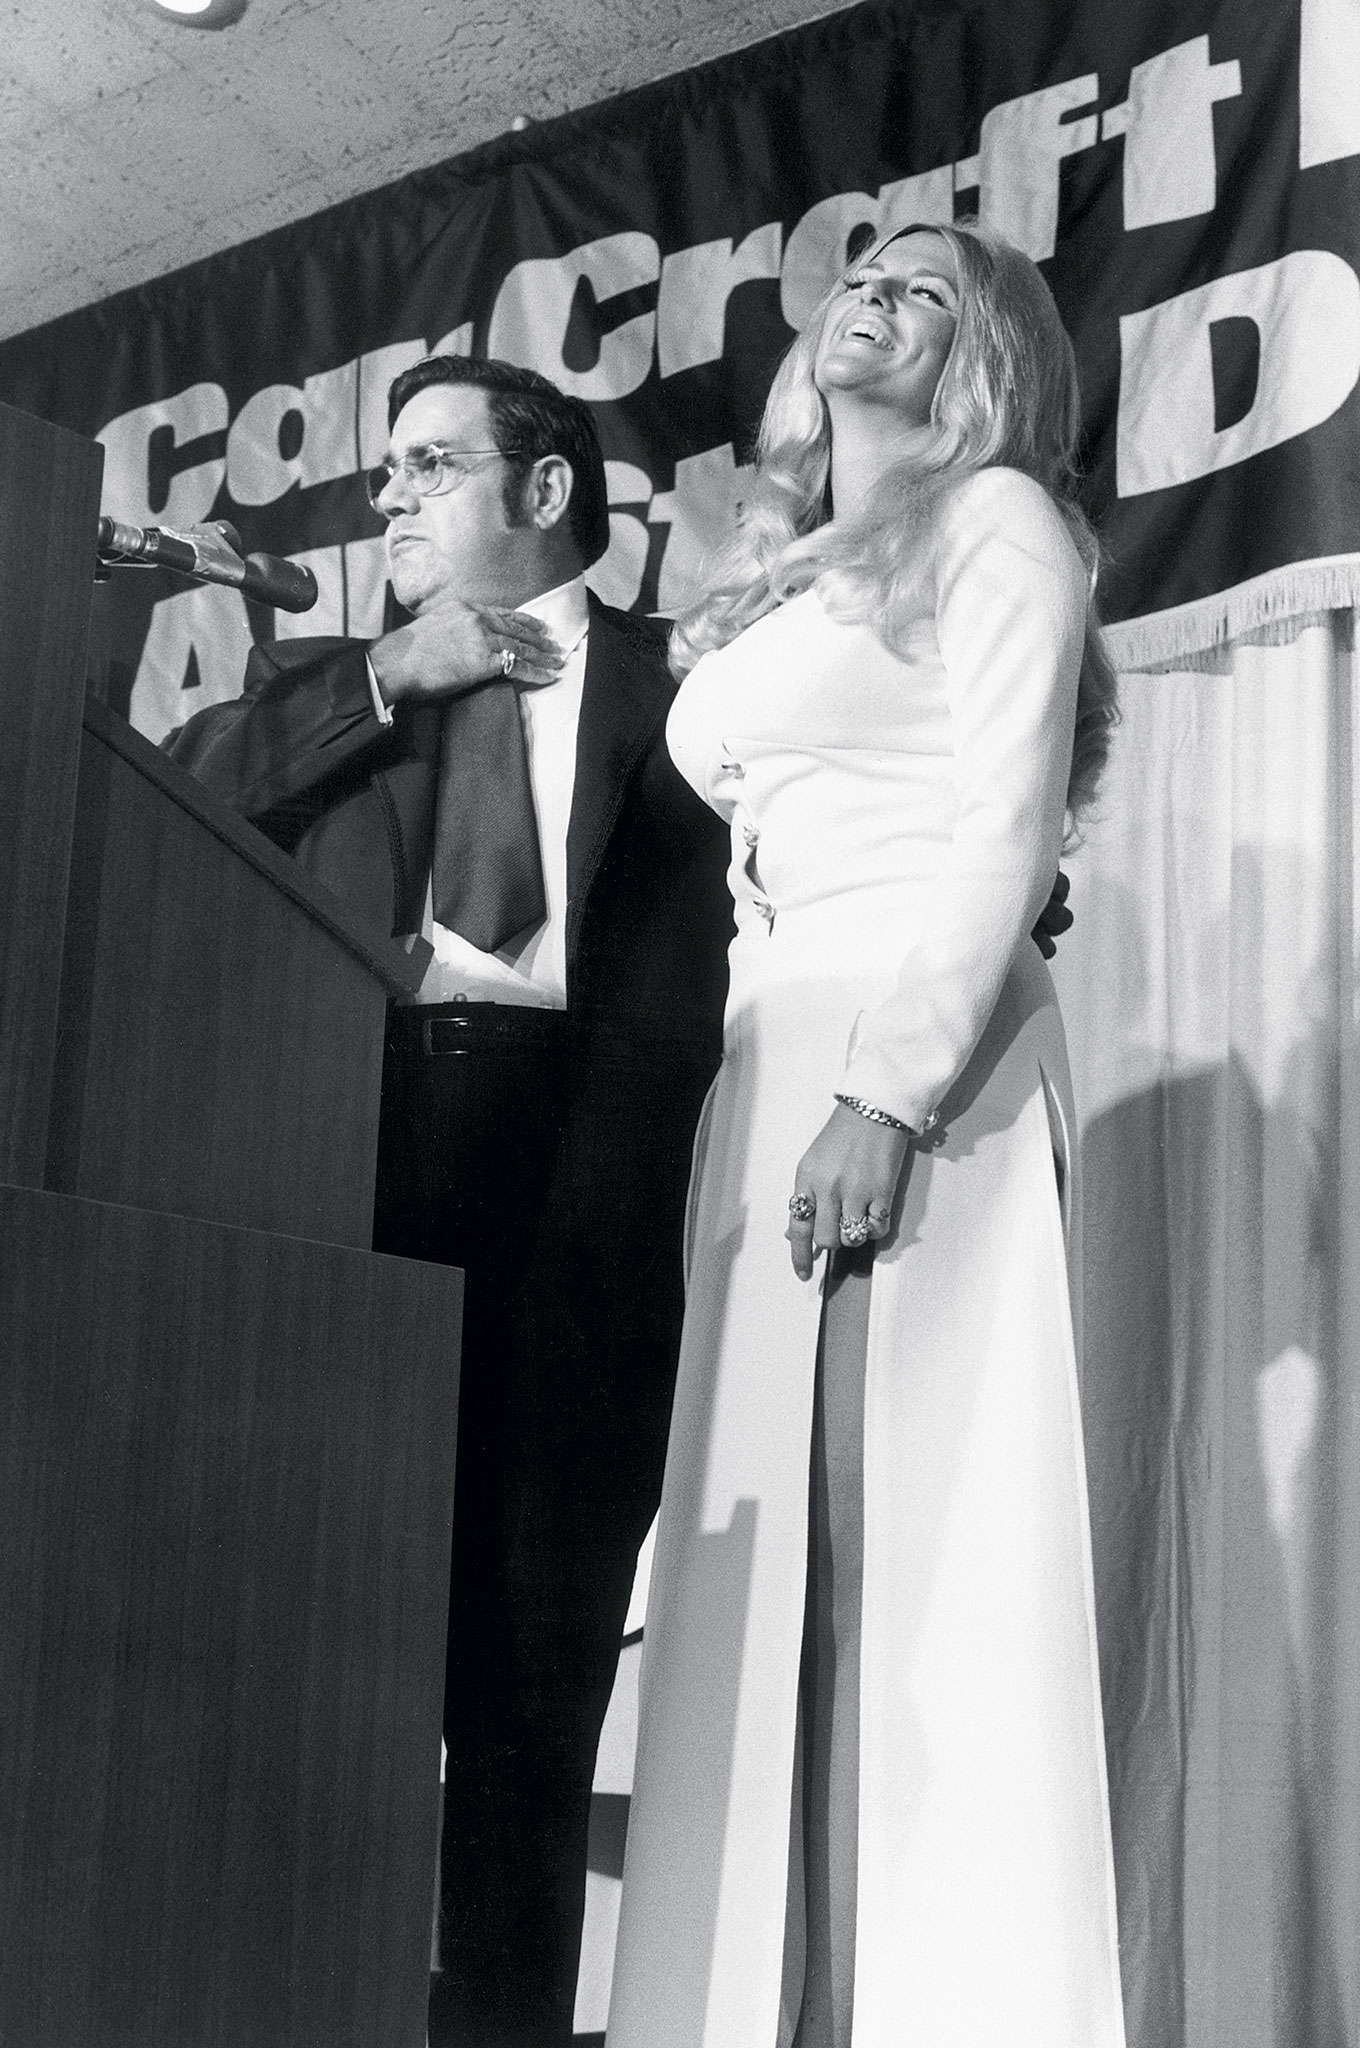 In a lighter moment, All-Star banquet emcee Lou Baney jokes with the inimitable Linda Vaughn. Baney, a Southern California drag racing icon, would later head up SEMA. He was presented with the Ollie Award in 1972, while Ms. Vaughn accepted hers in 1980.